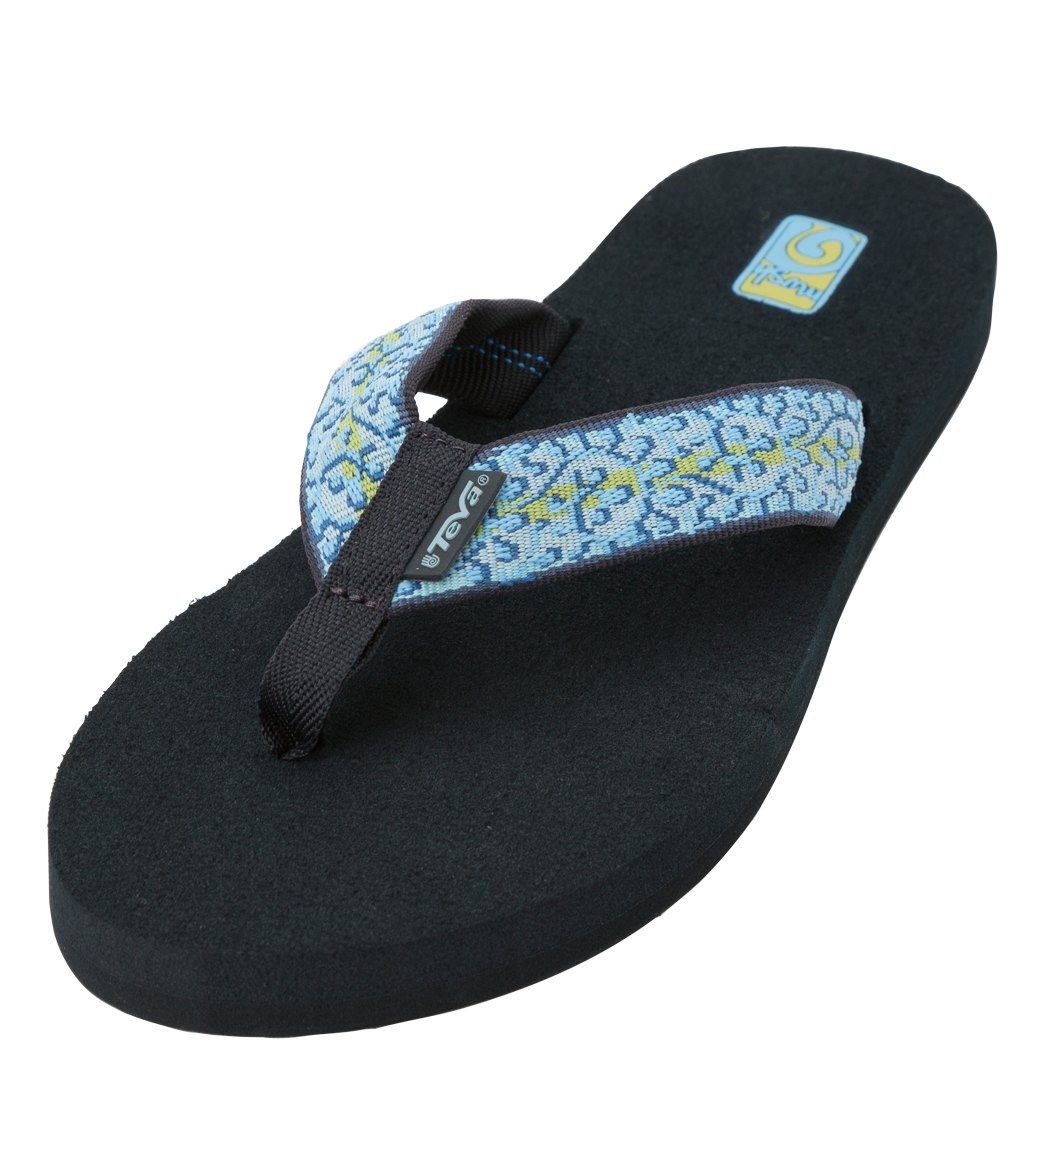 940c8d888 Teva Women s Mush II Flip Flop at SwimOutlet.com